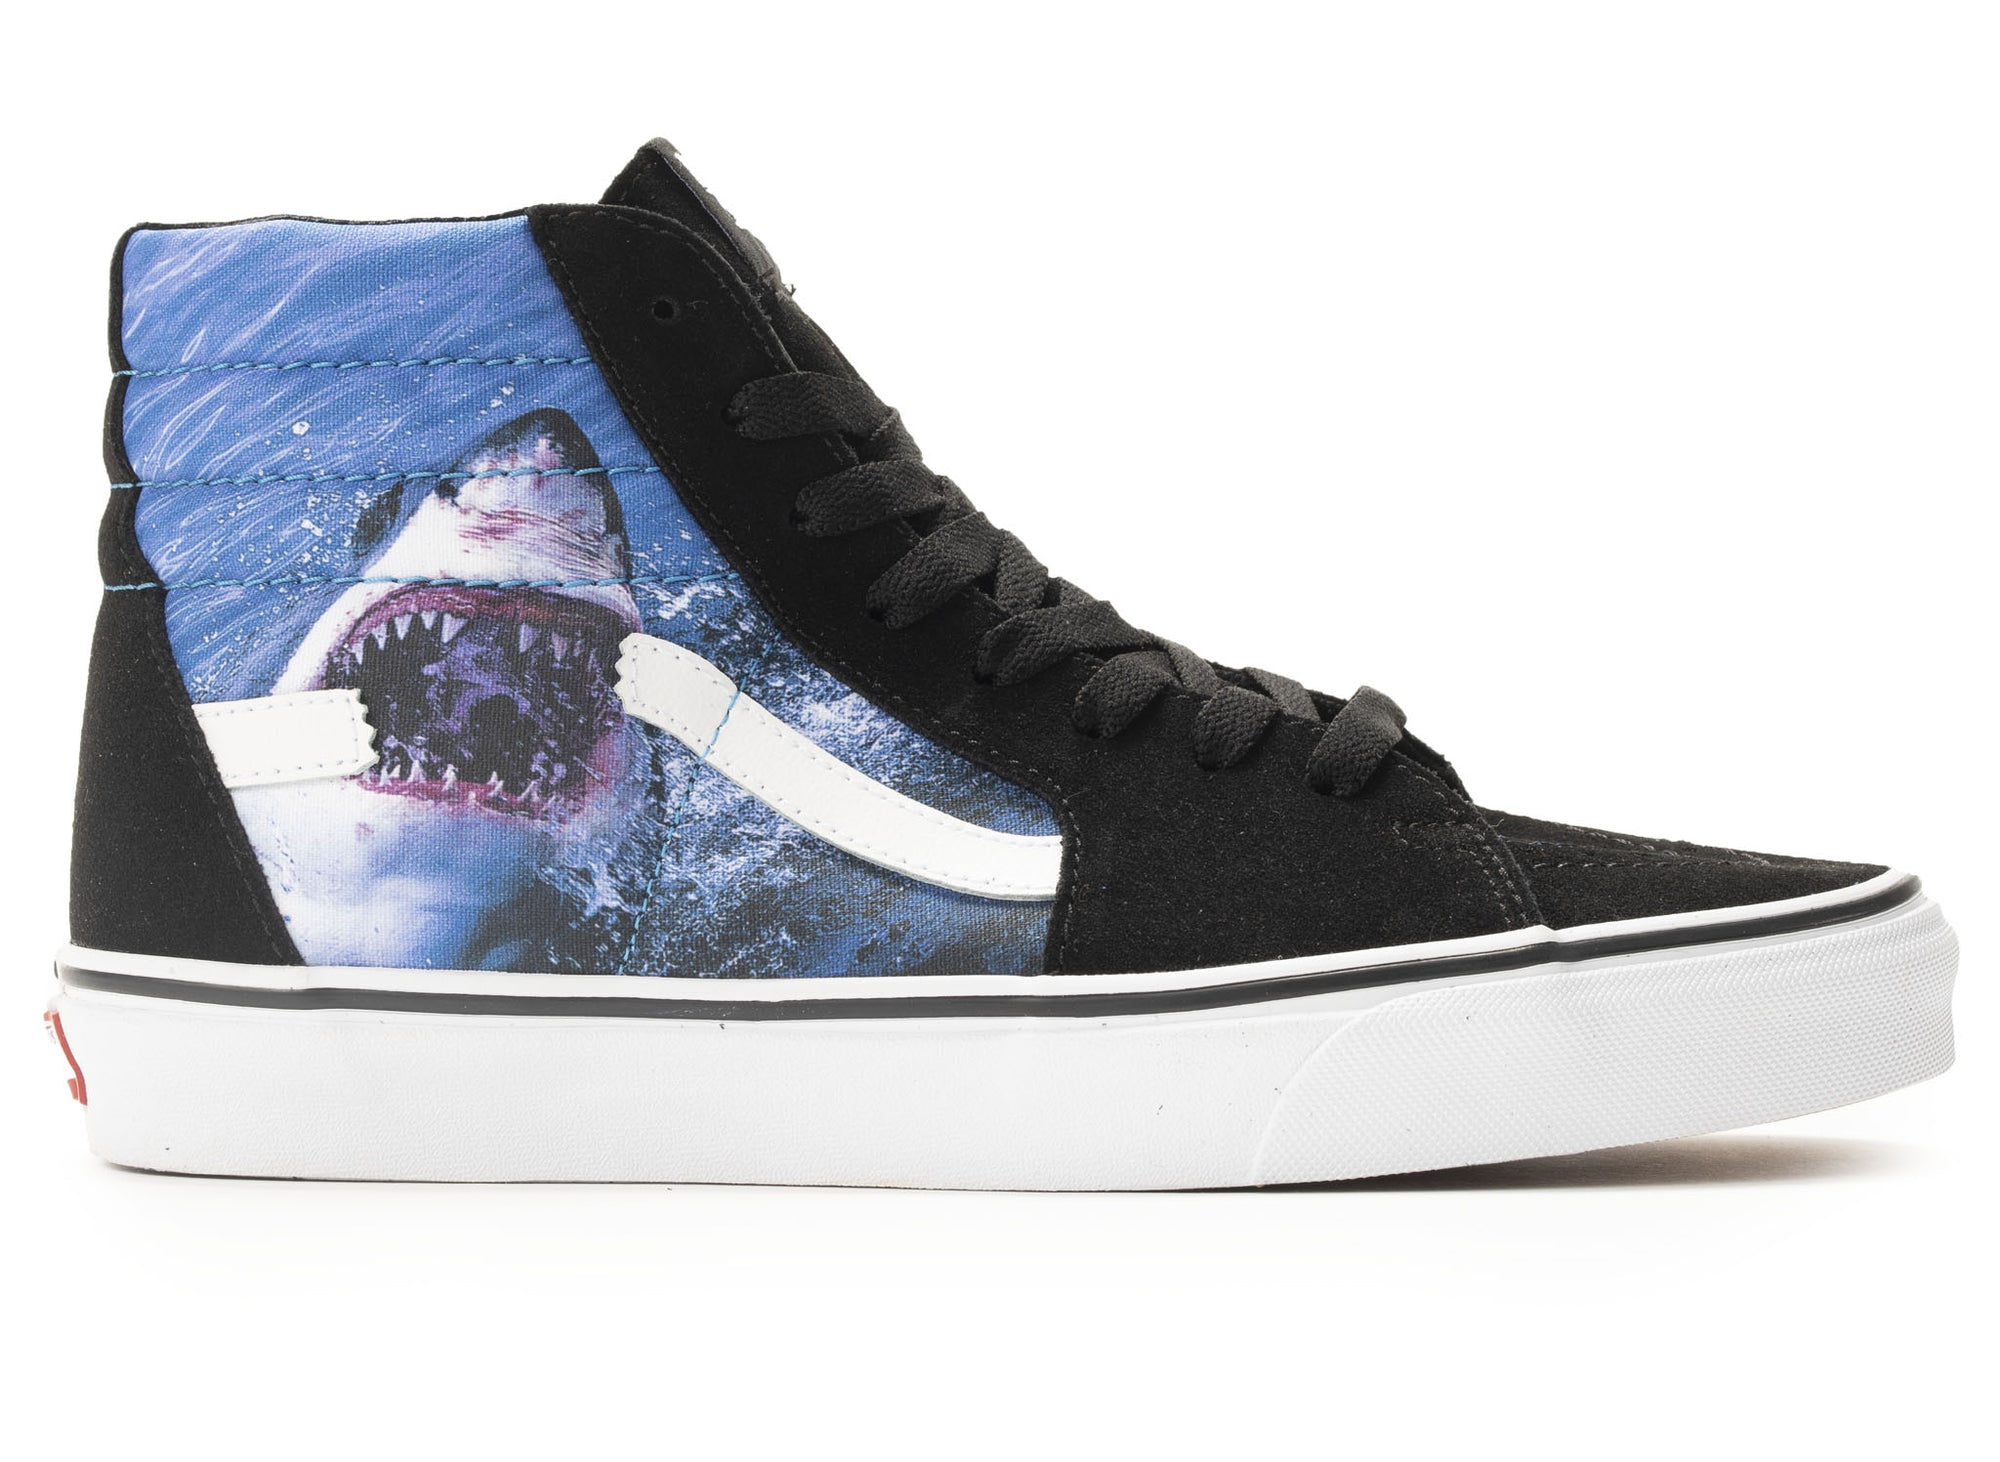 Vans x Shark Week Men's Sk8 Hi